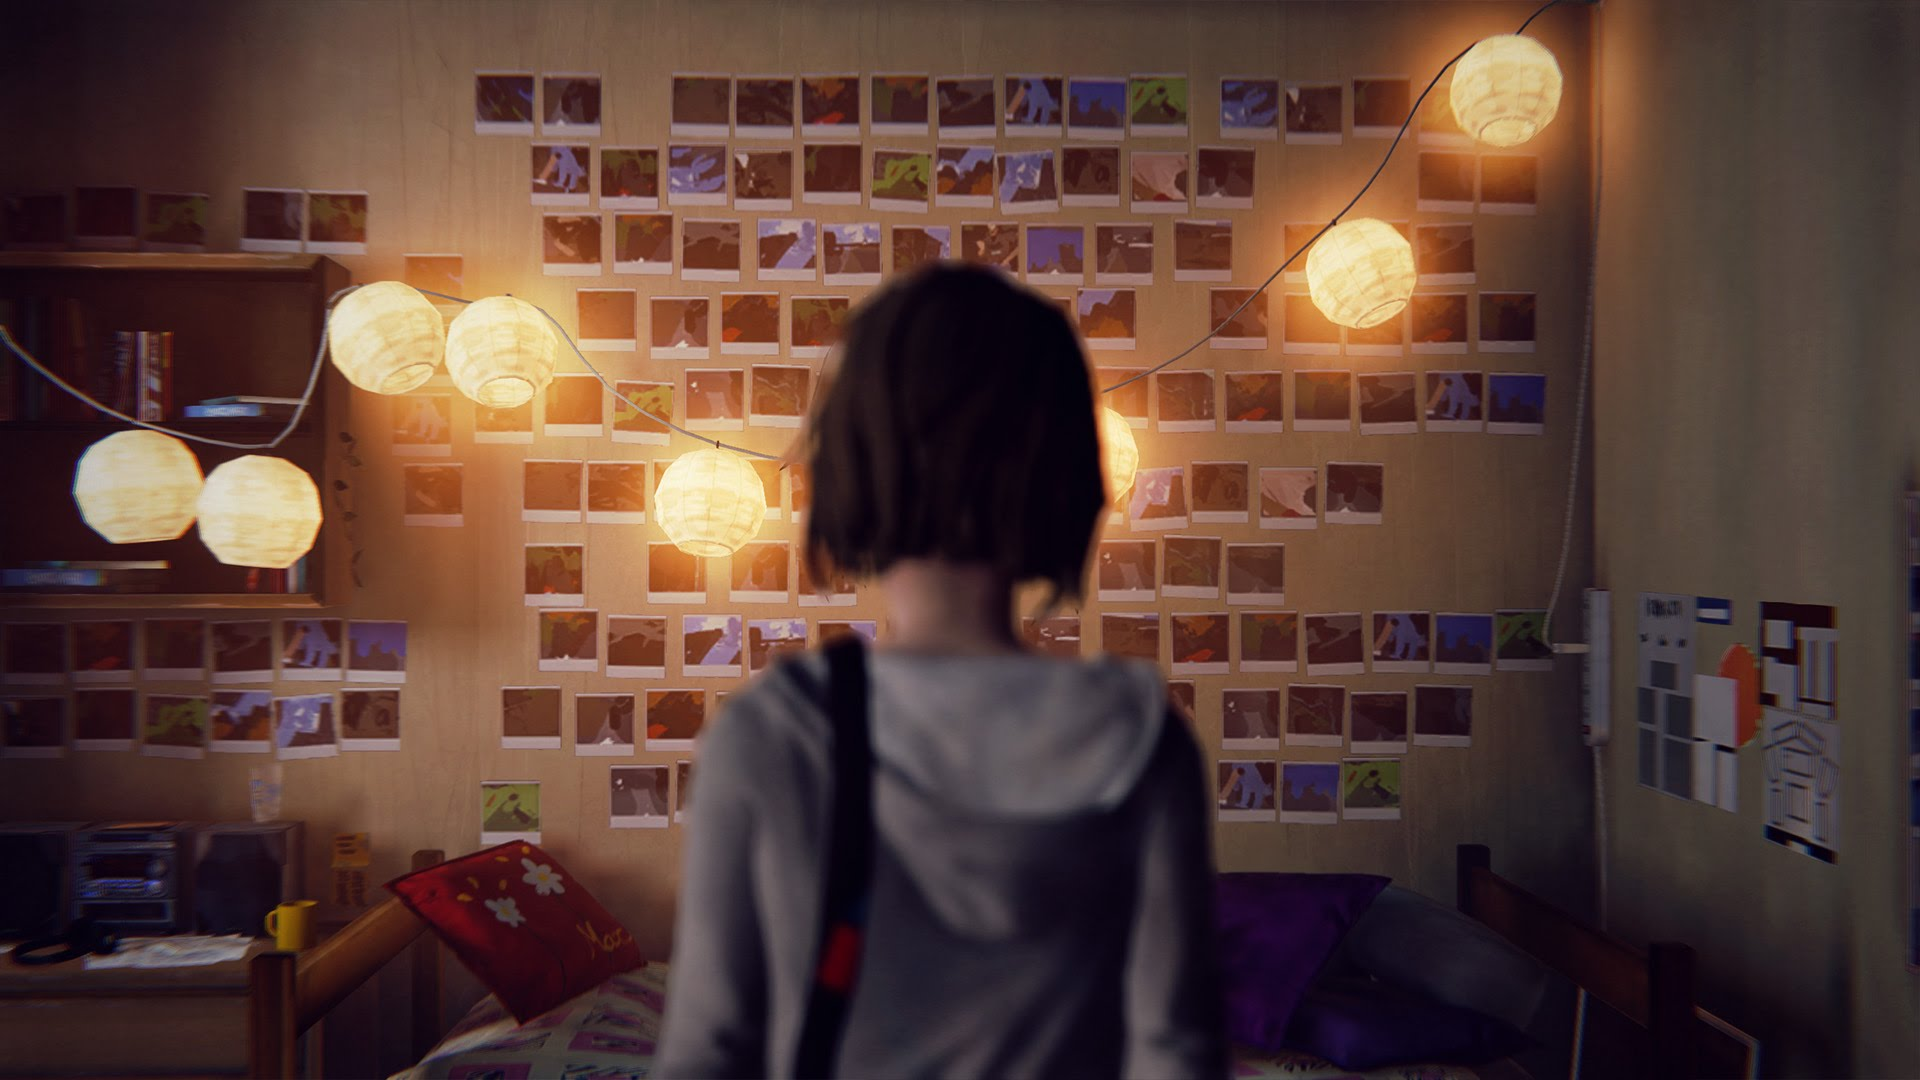 Life Is Strange © Dontnod Entertainment / Square Enix